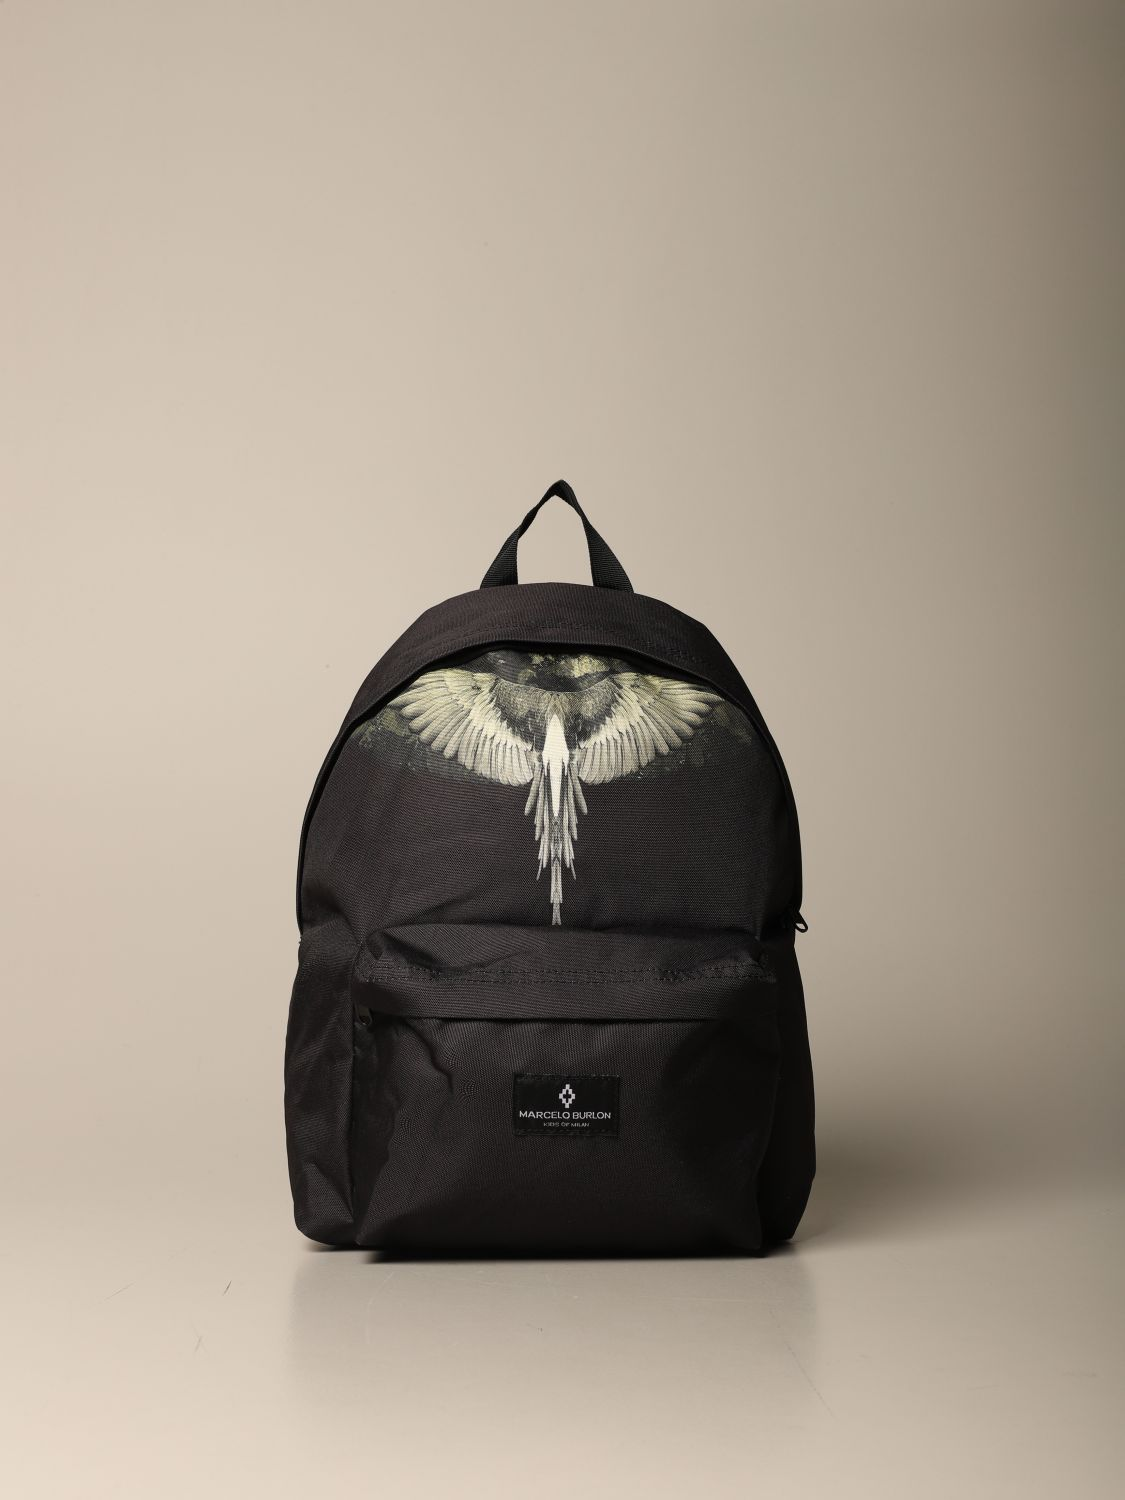 Duffel Bag Marcelo Burlon: Marcelo Burlon backpack in canvas with wings print black 1